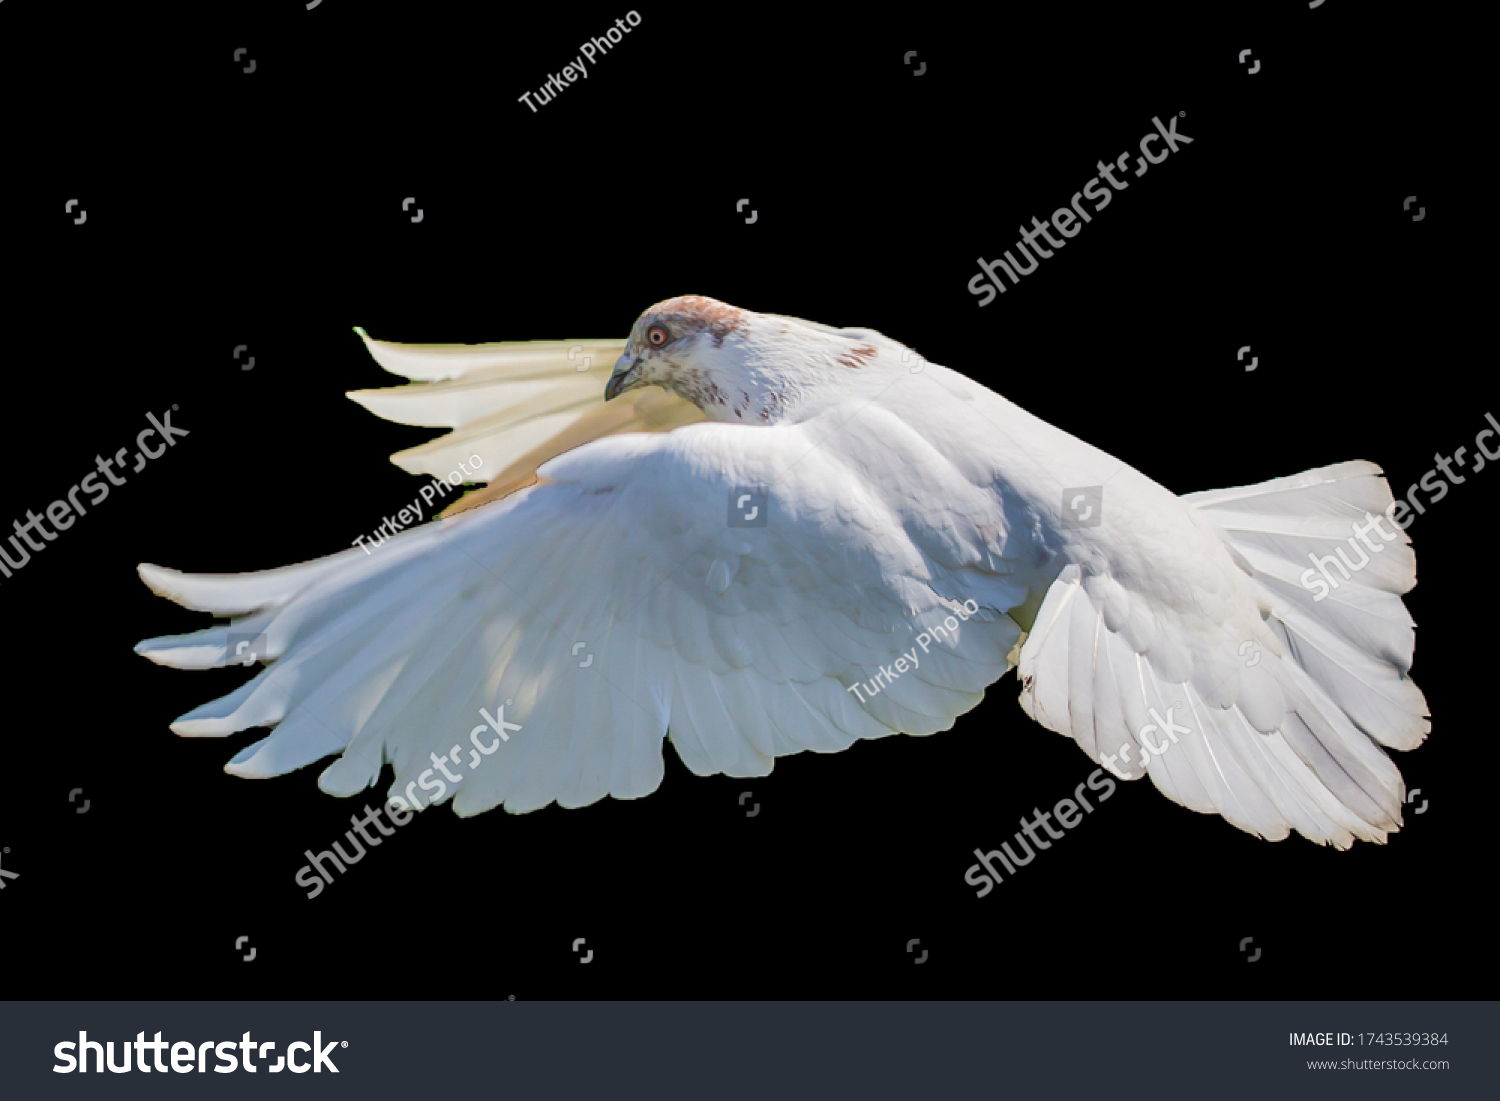 stock-photo-white-pigeon-flying-isolated